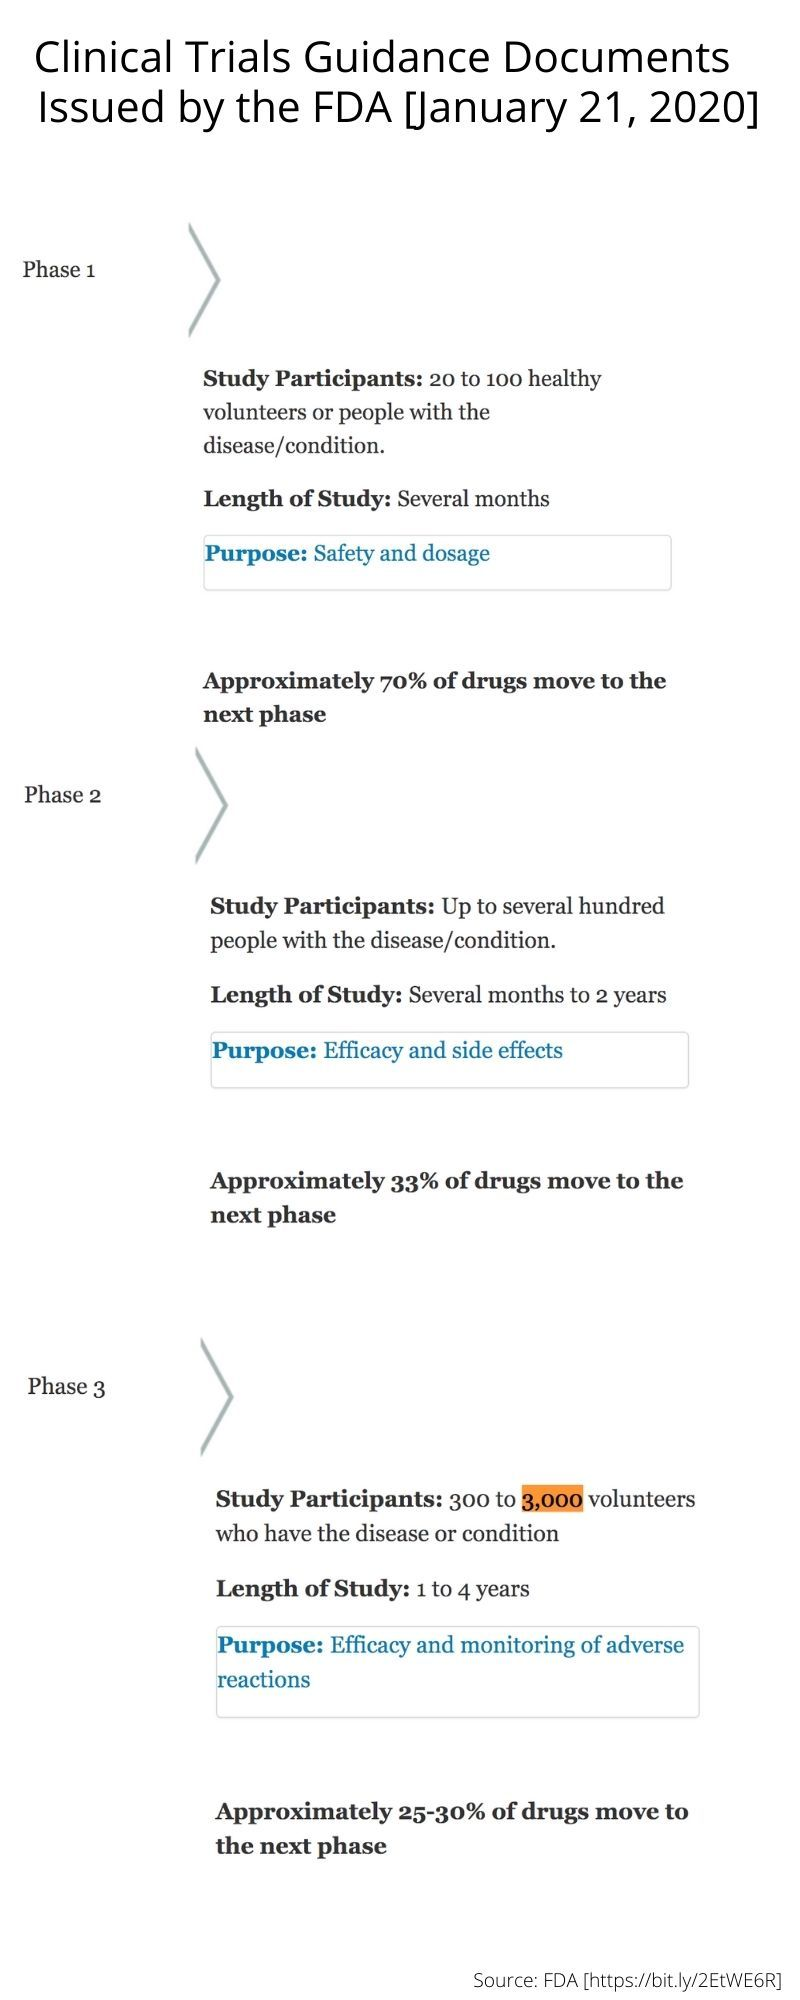 Clinical trials guidelines documents FDA